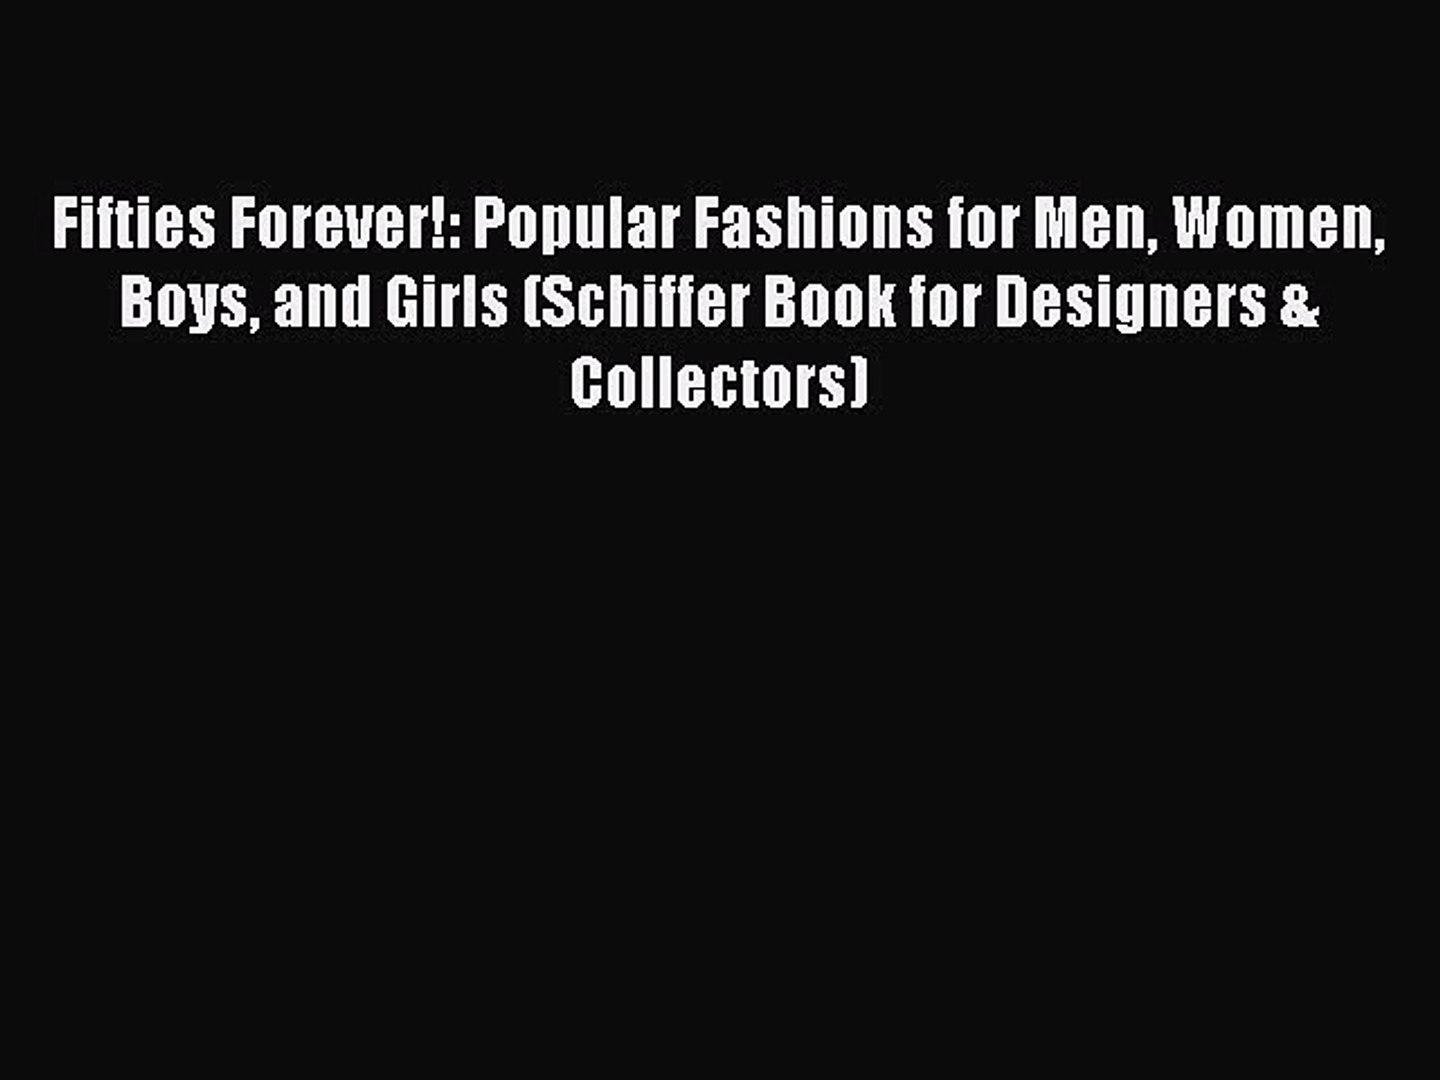 (PDF Download) Fifties Forever!: Popular Fashions for Men Women Boys and Girls (Schiffer Book